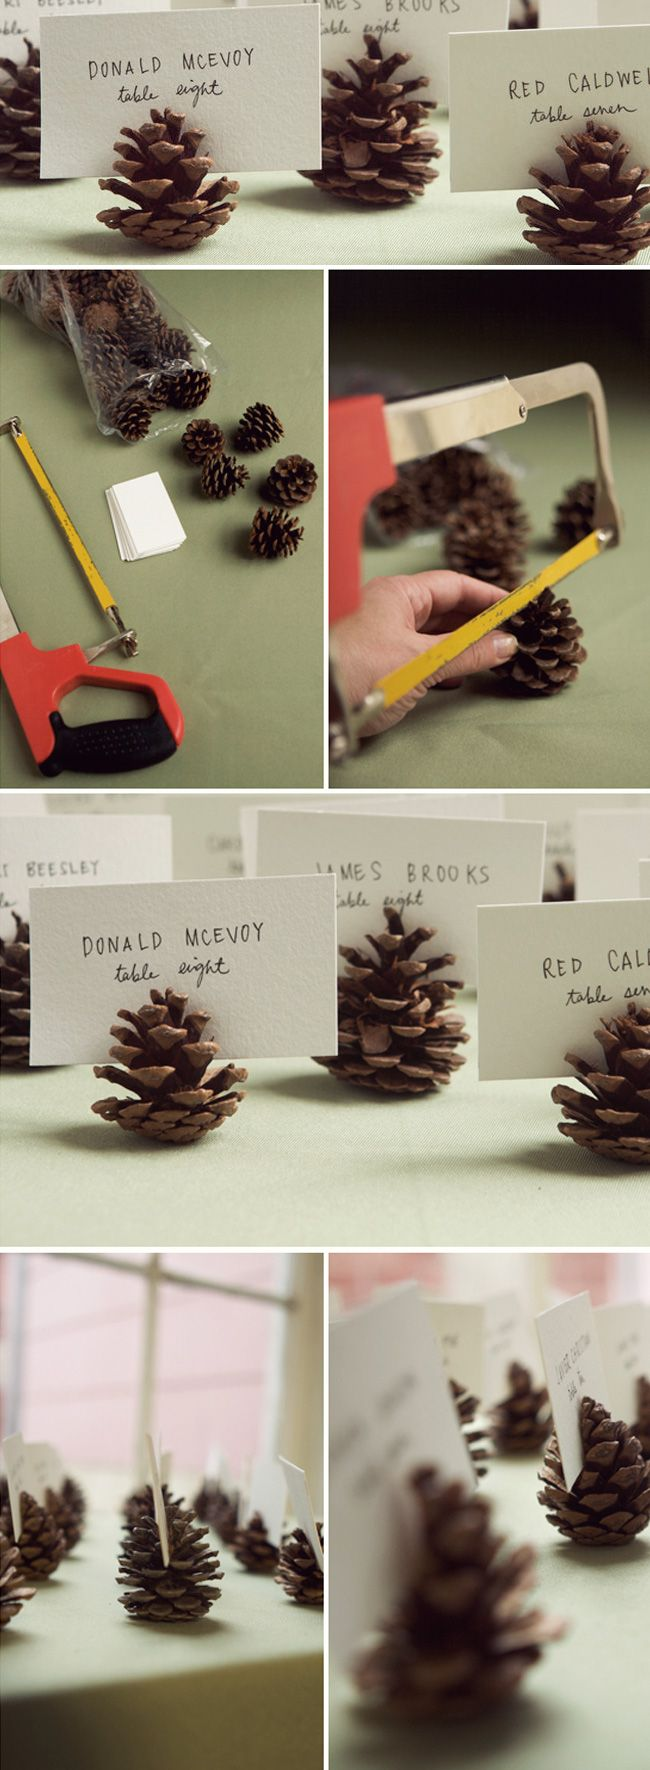 diy-pinecones-place-card-fall-wedding-idea.jpg